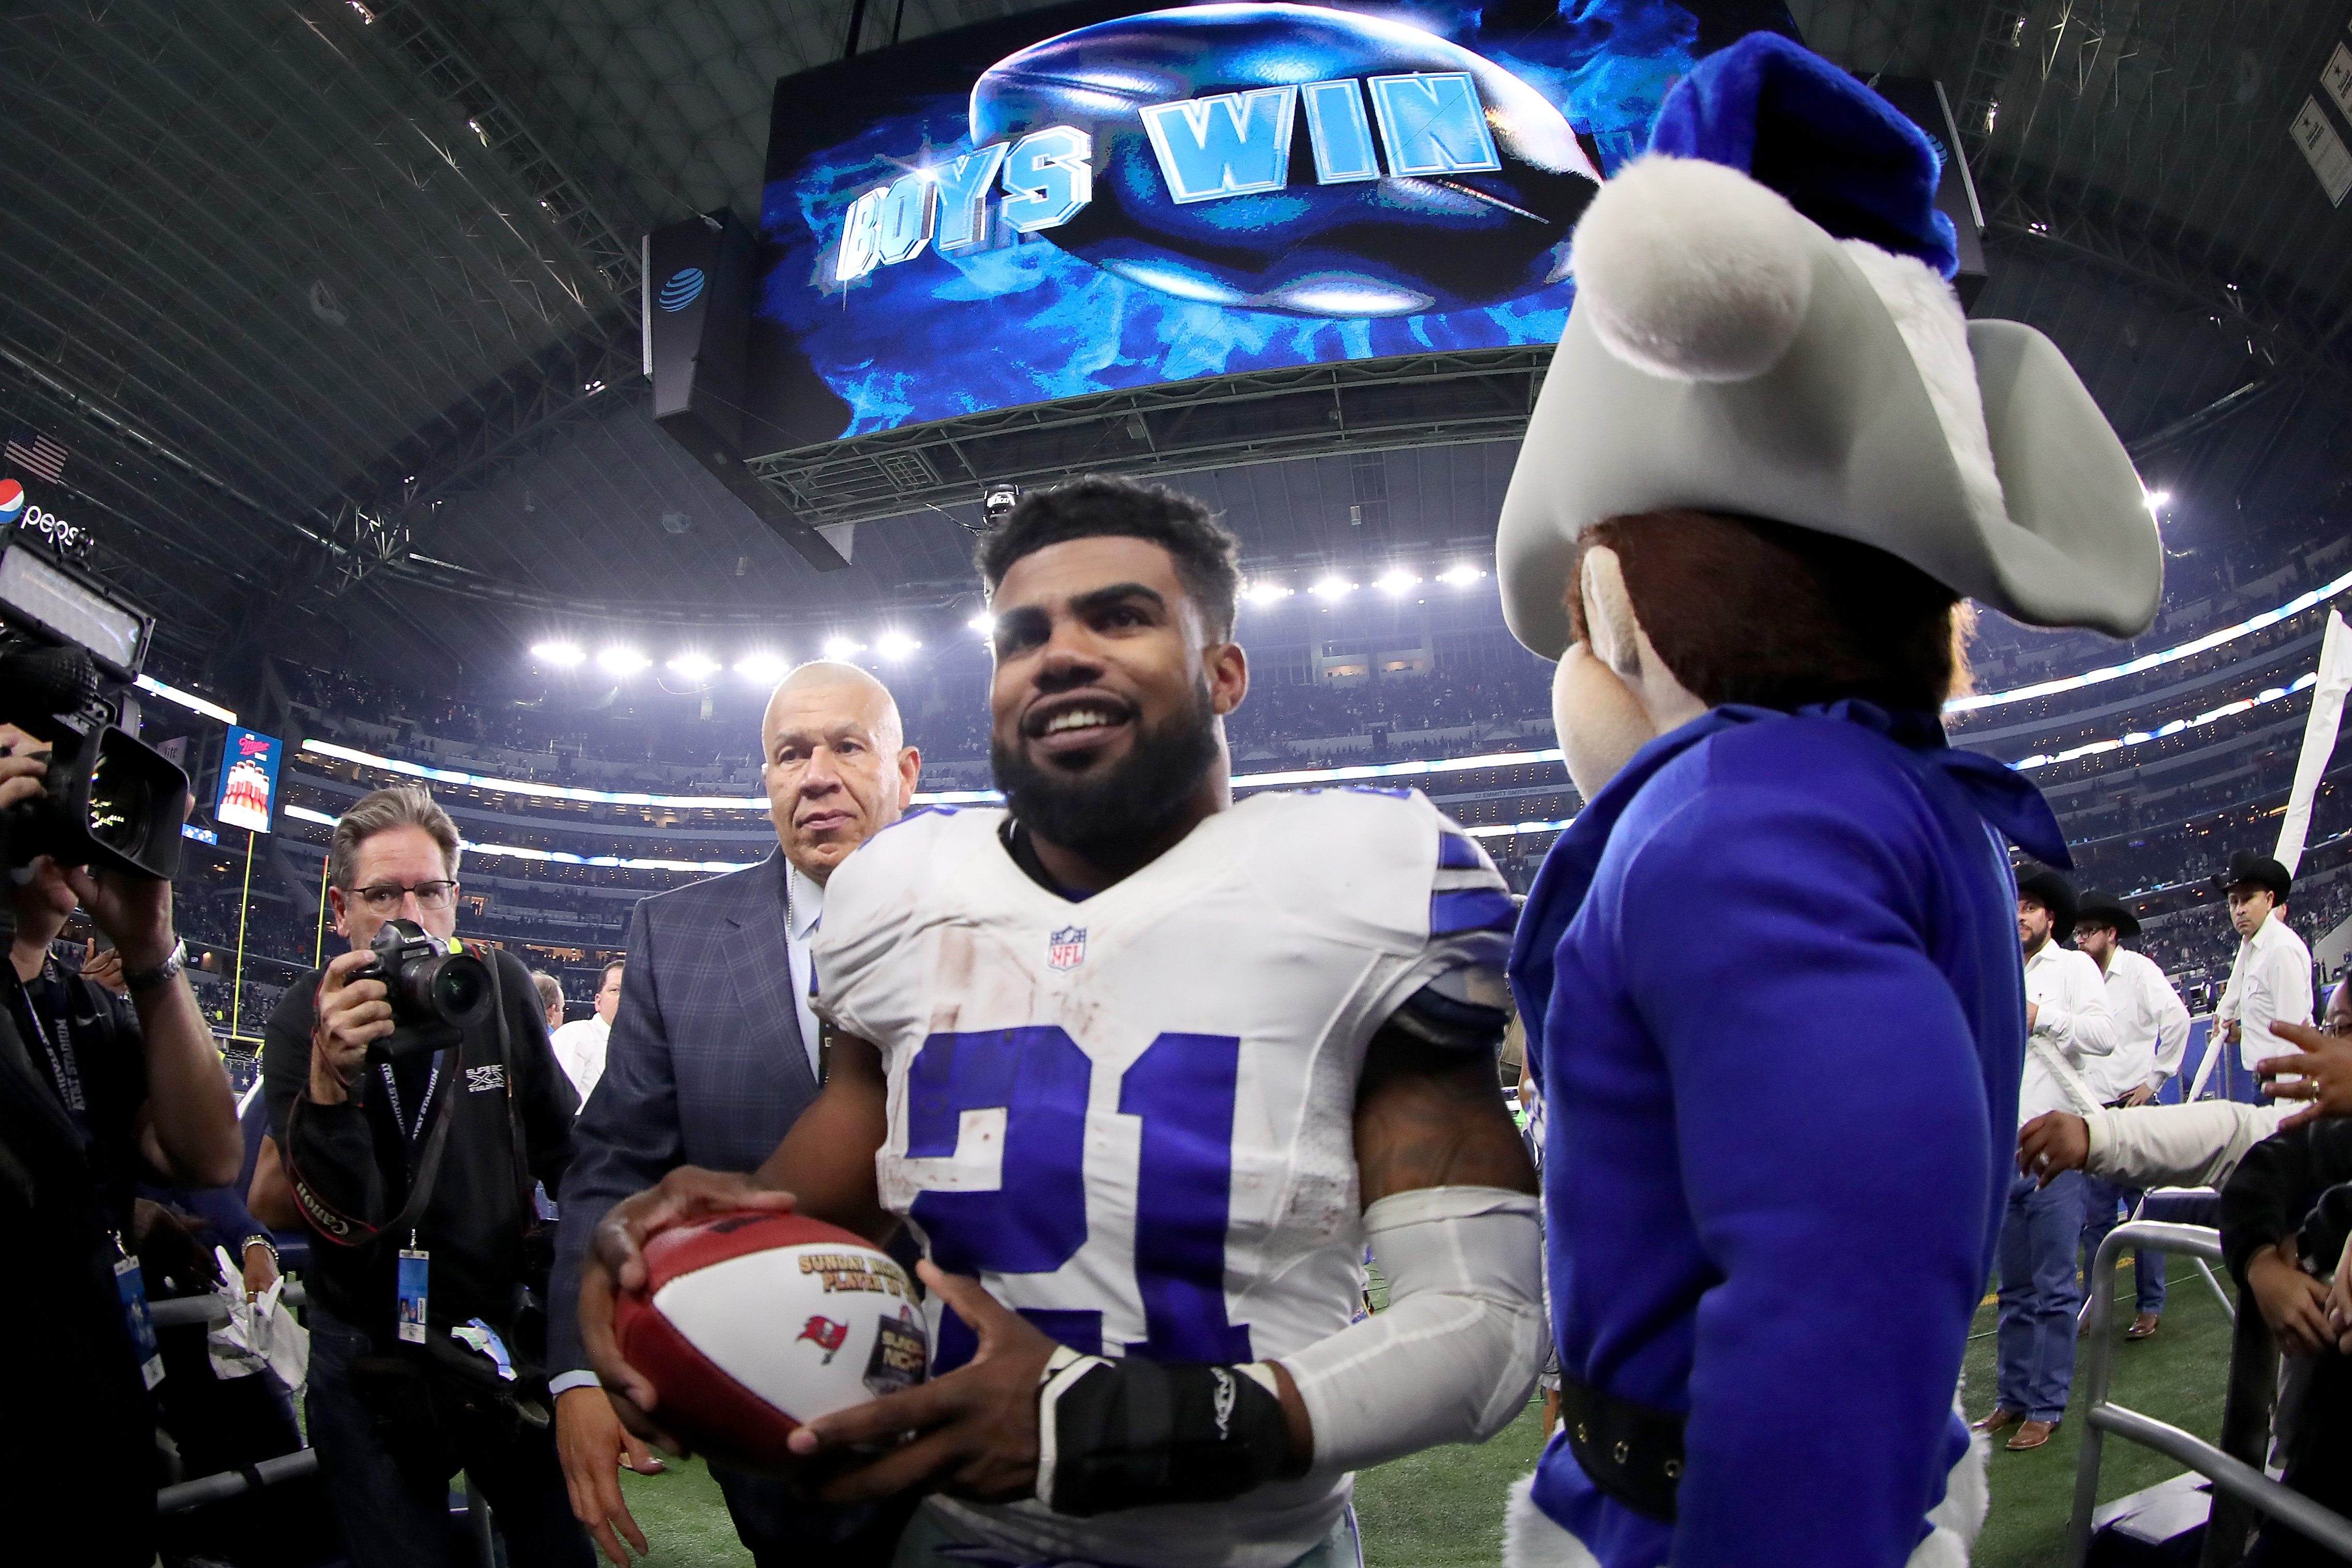 Dallas police suspend Ezekiel Elliott investigation due to lack of witness